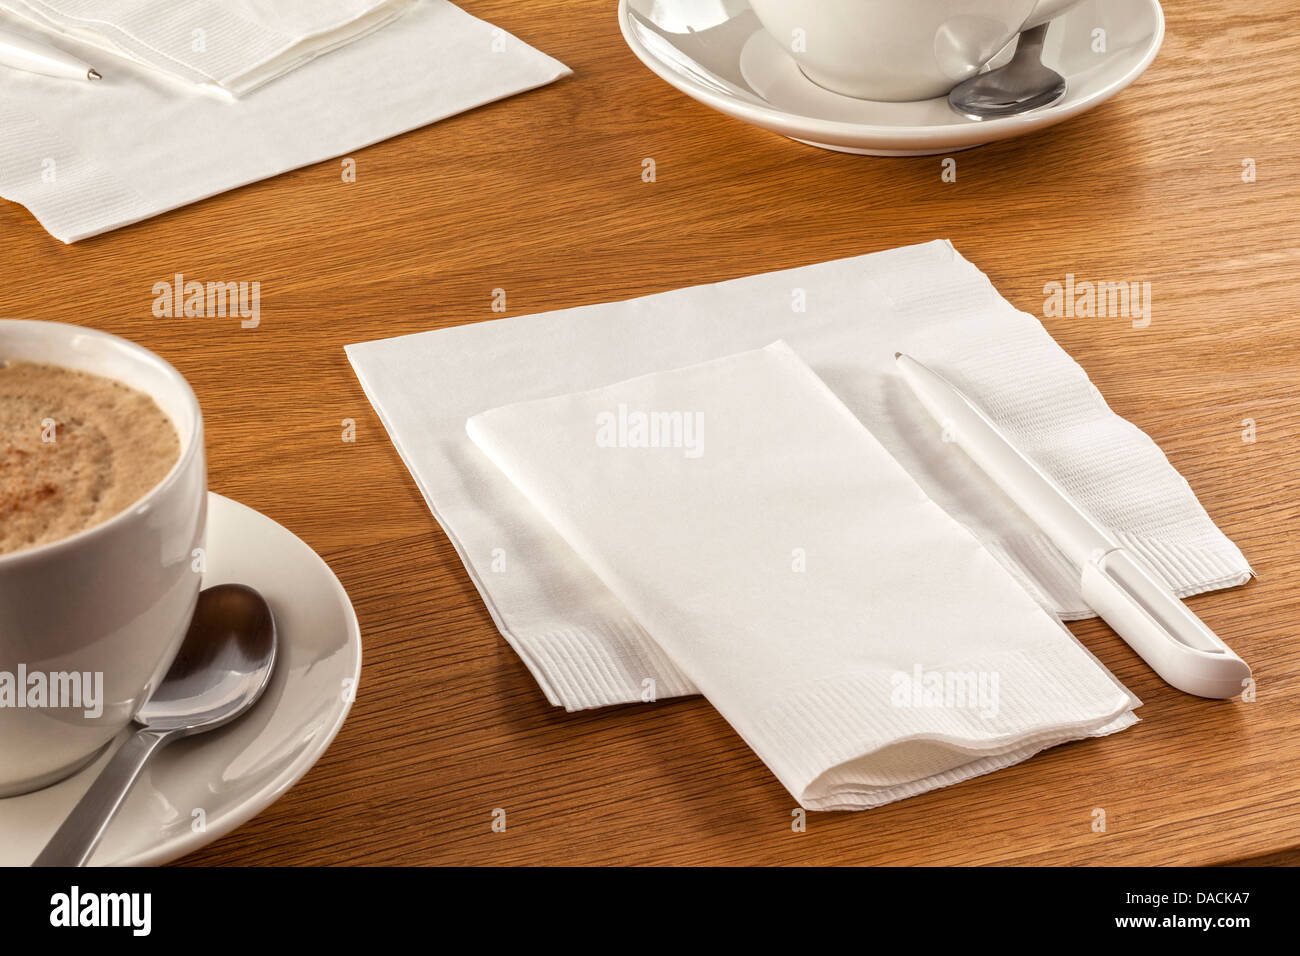 Serviette and Pen - napkin or serviette and pen on table, ready to make a note of your latest great idea, along - Stock Image